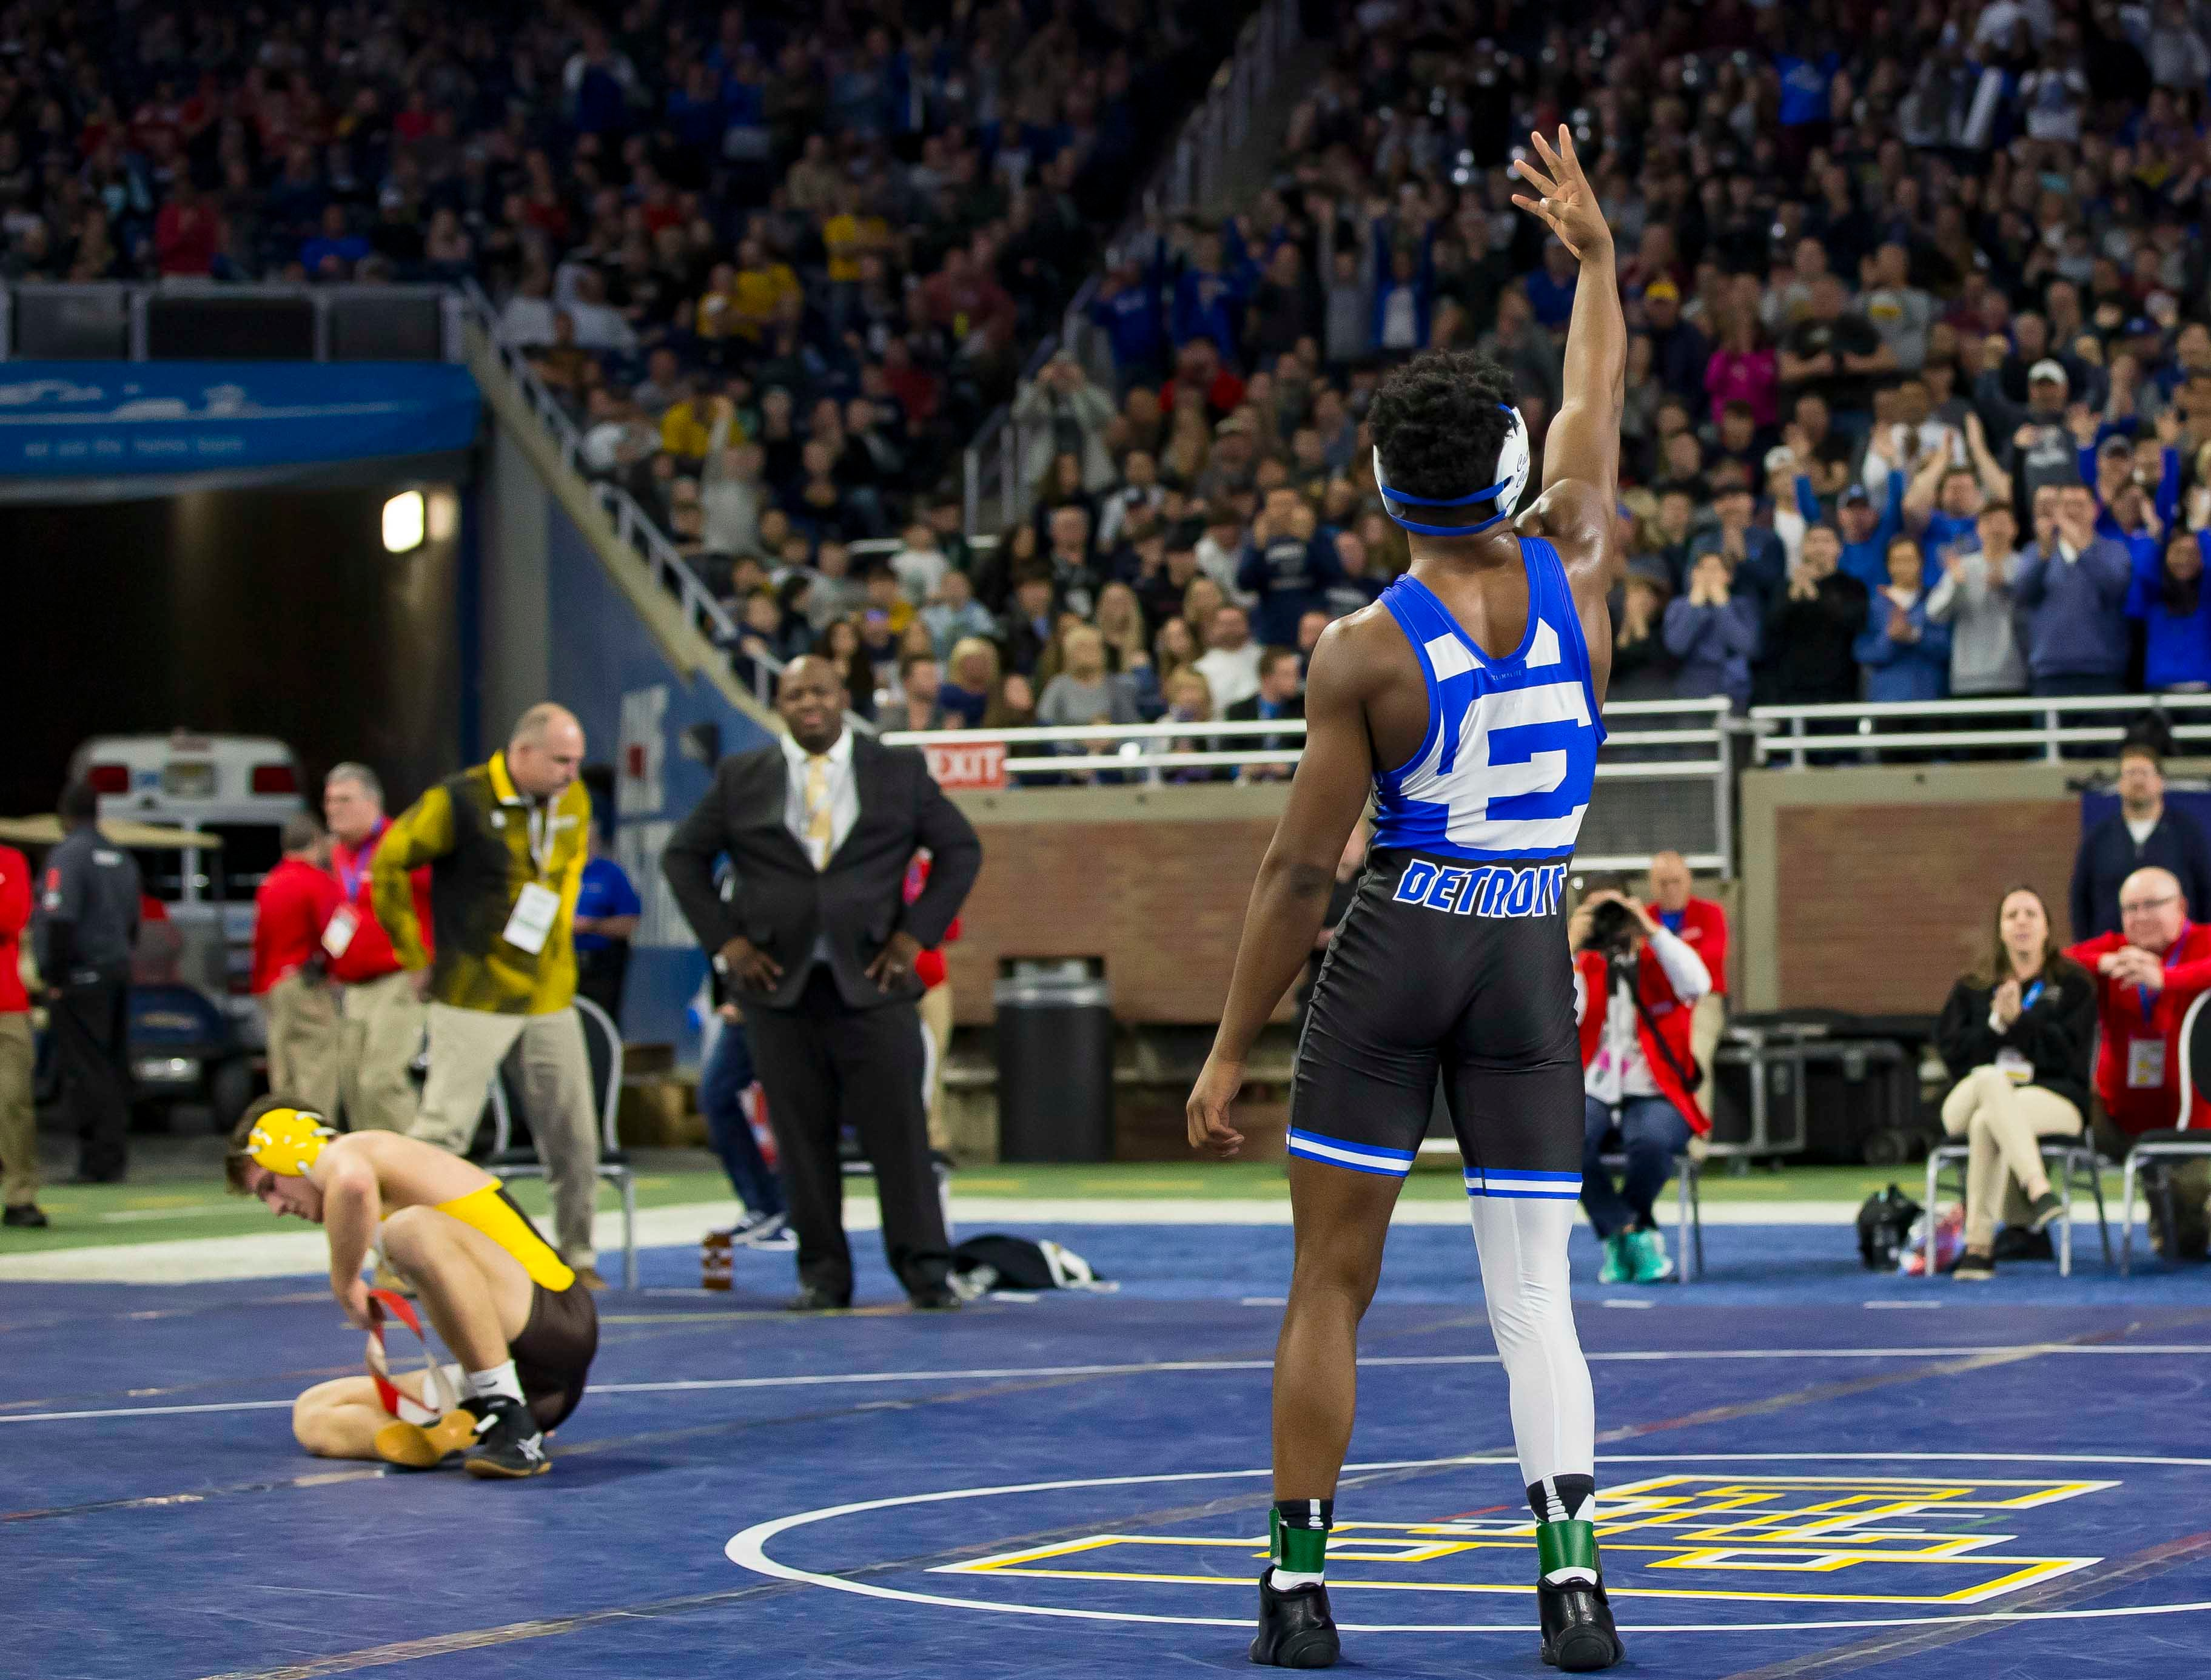 Kevon Davenport of Detroit Catholic Central raises four fingers after winning the 145-pound Division 1 championship match, his fourth straight state championship.